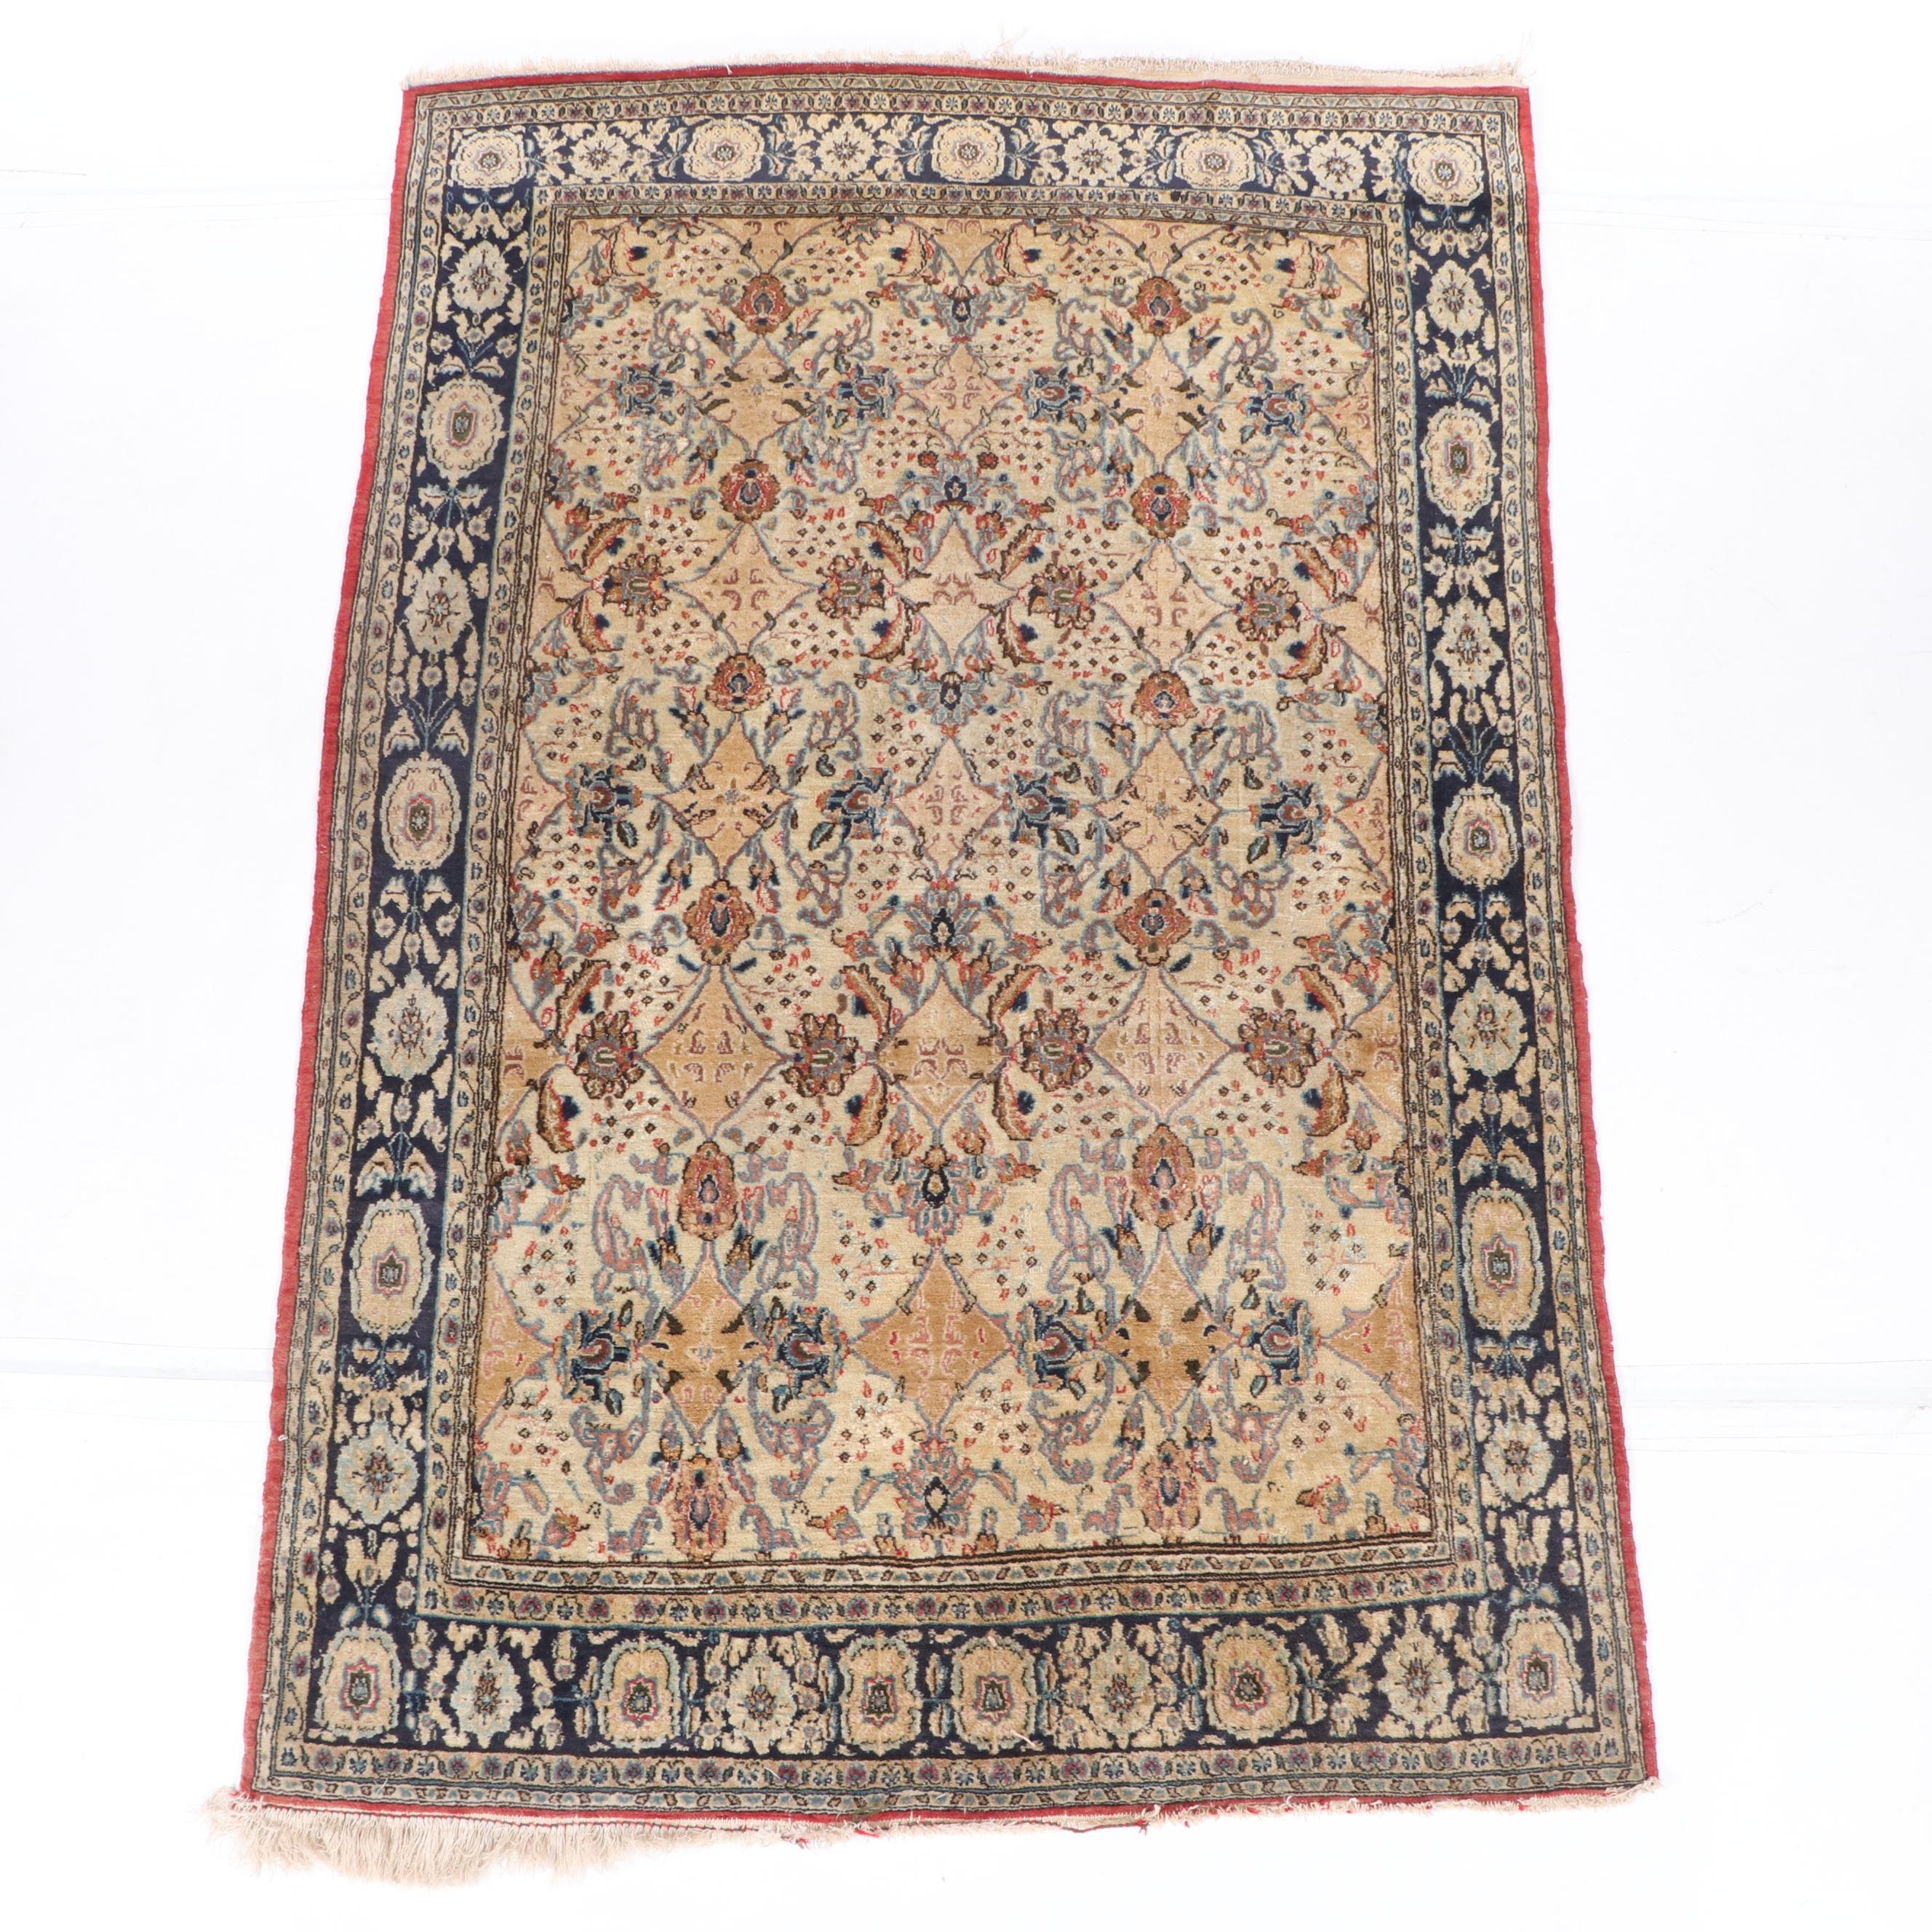 Hand-Knotted Northwest Persian Wool Area Rug